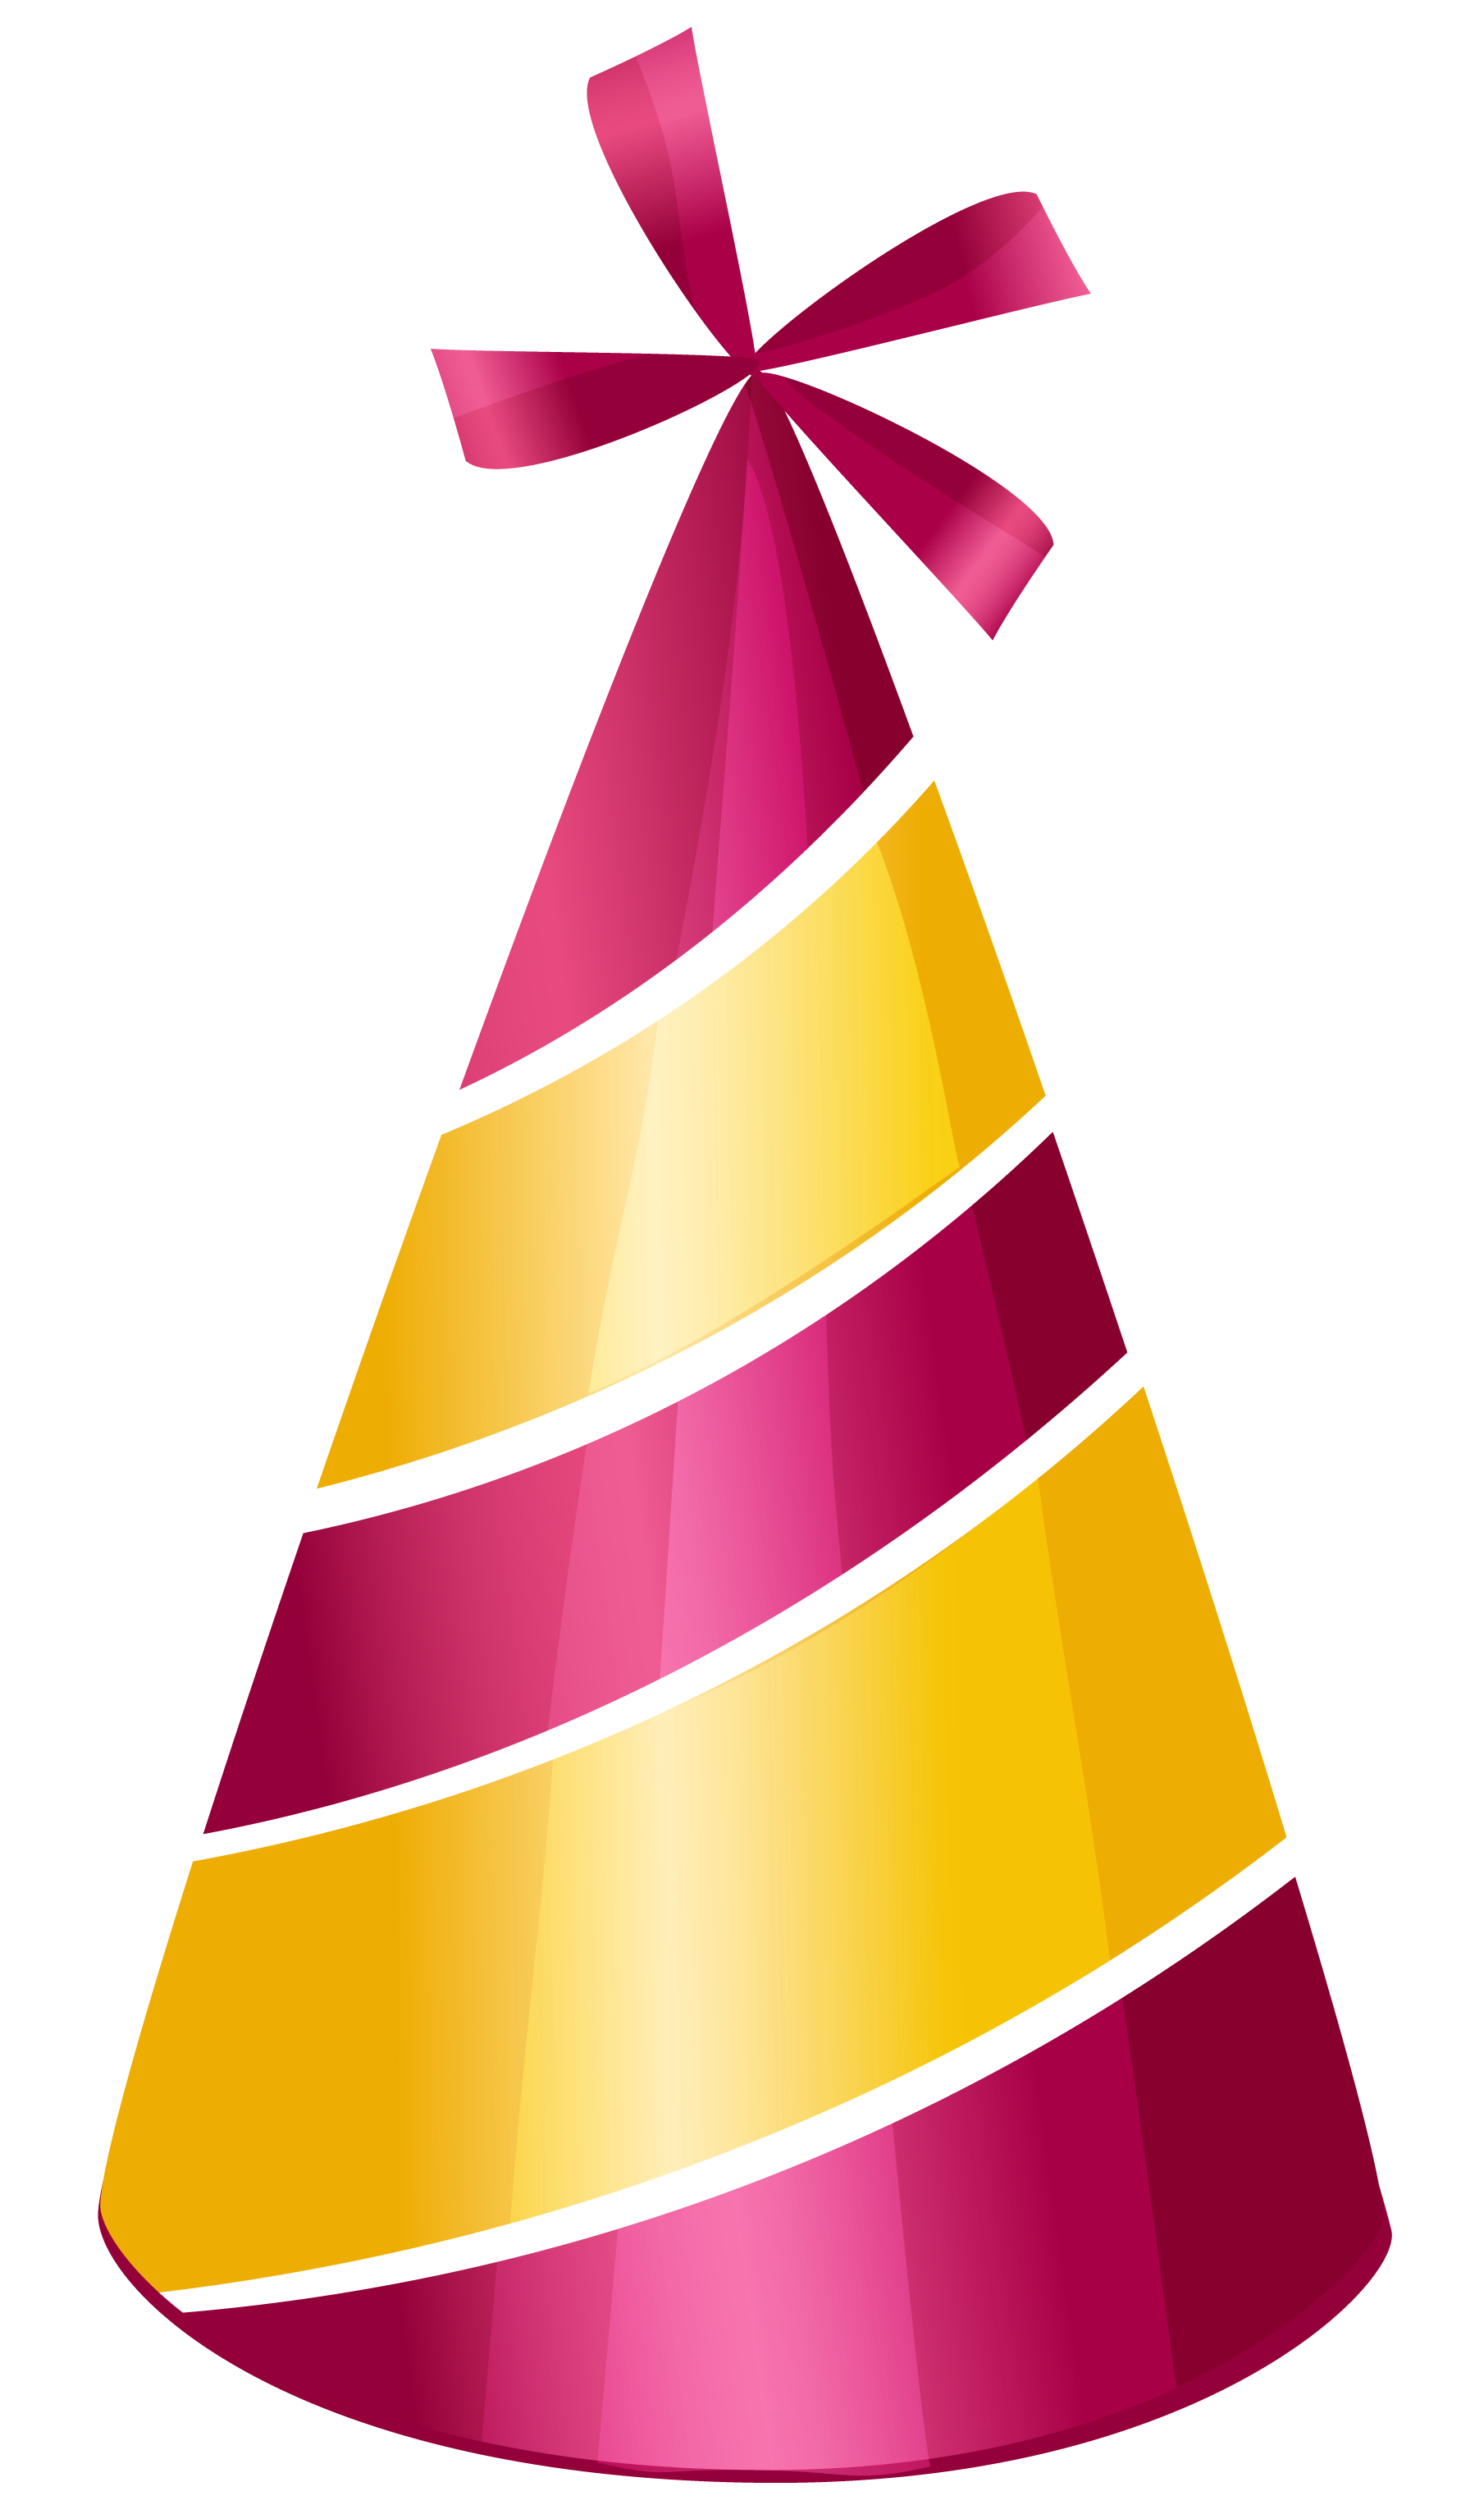 1809x3053 Party Hat Png Clipart Pictureu200b Gallery Yopriceville